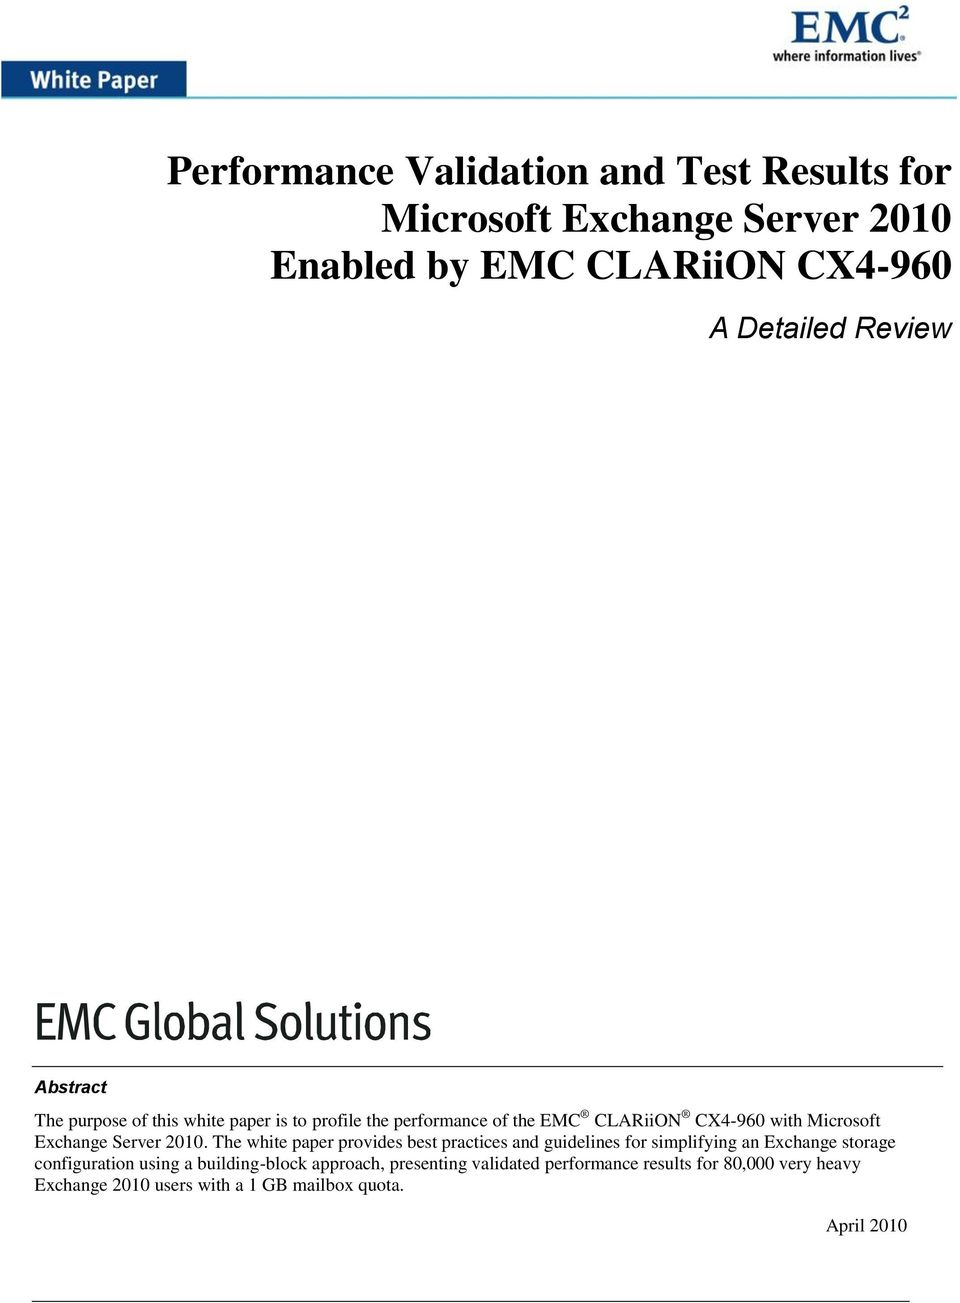 The white paper provides best practices and guidelines for simplifying an Exchange storage configuration using a